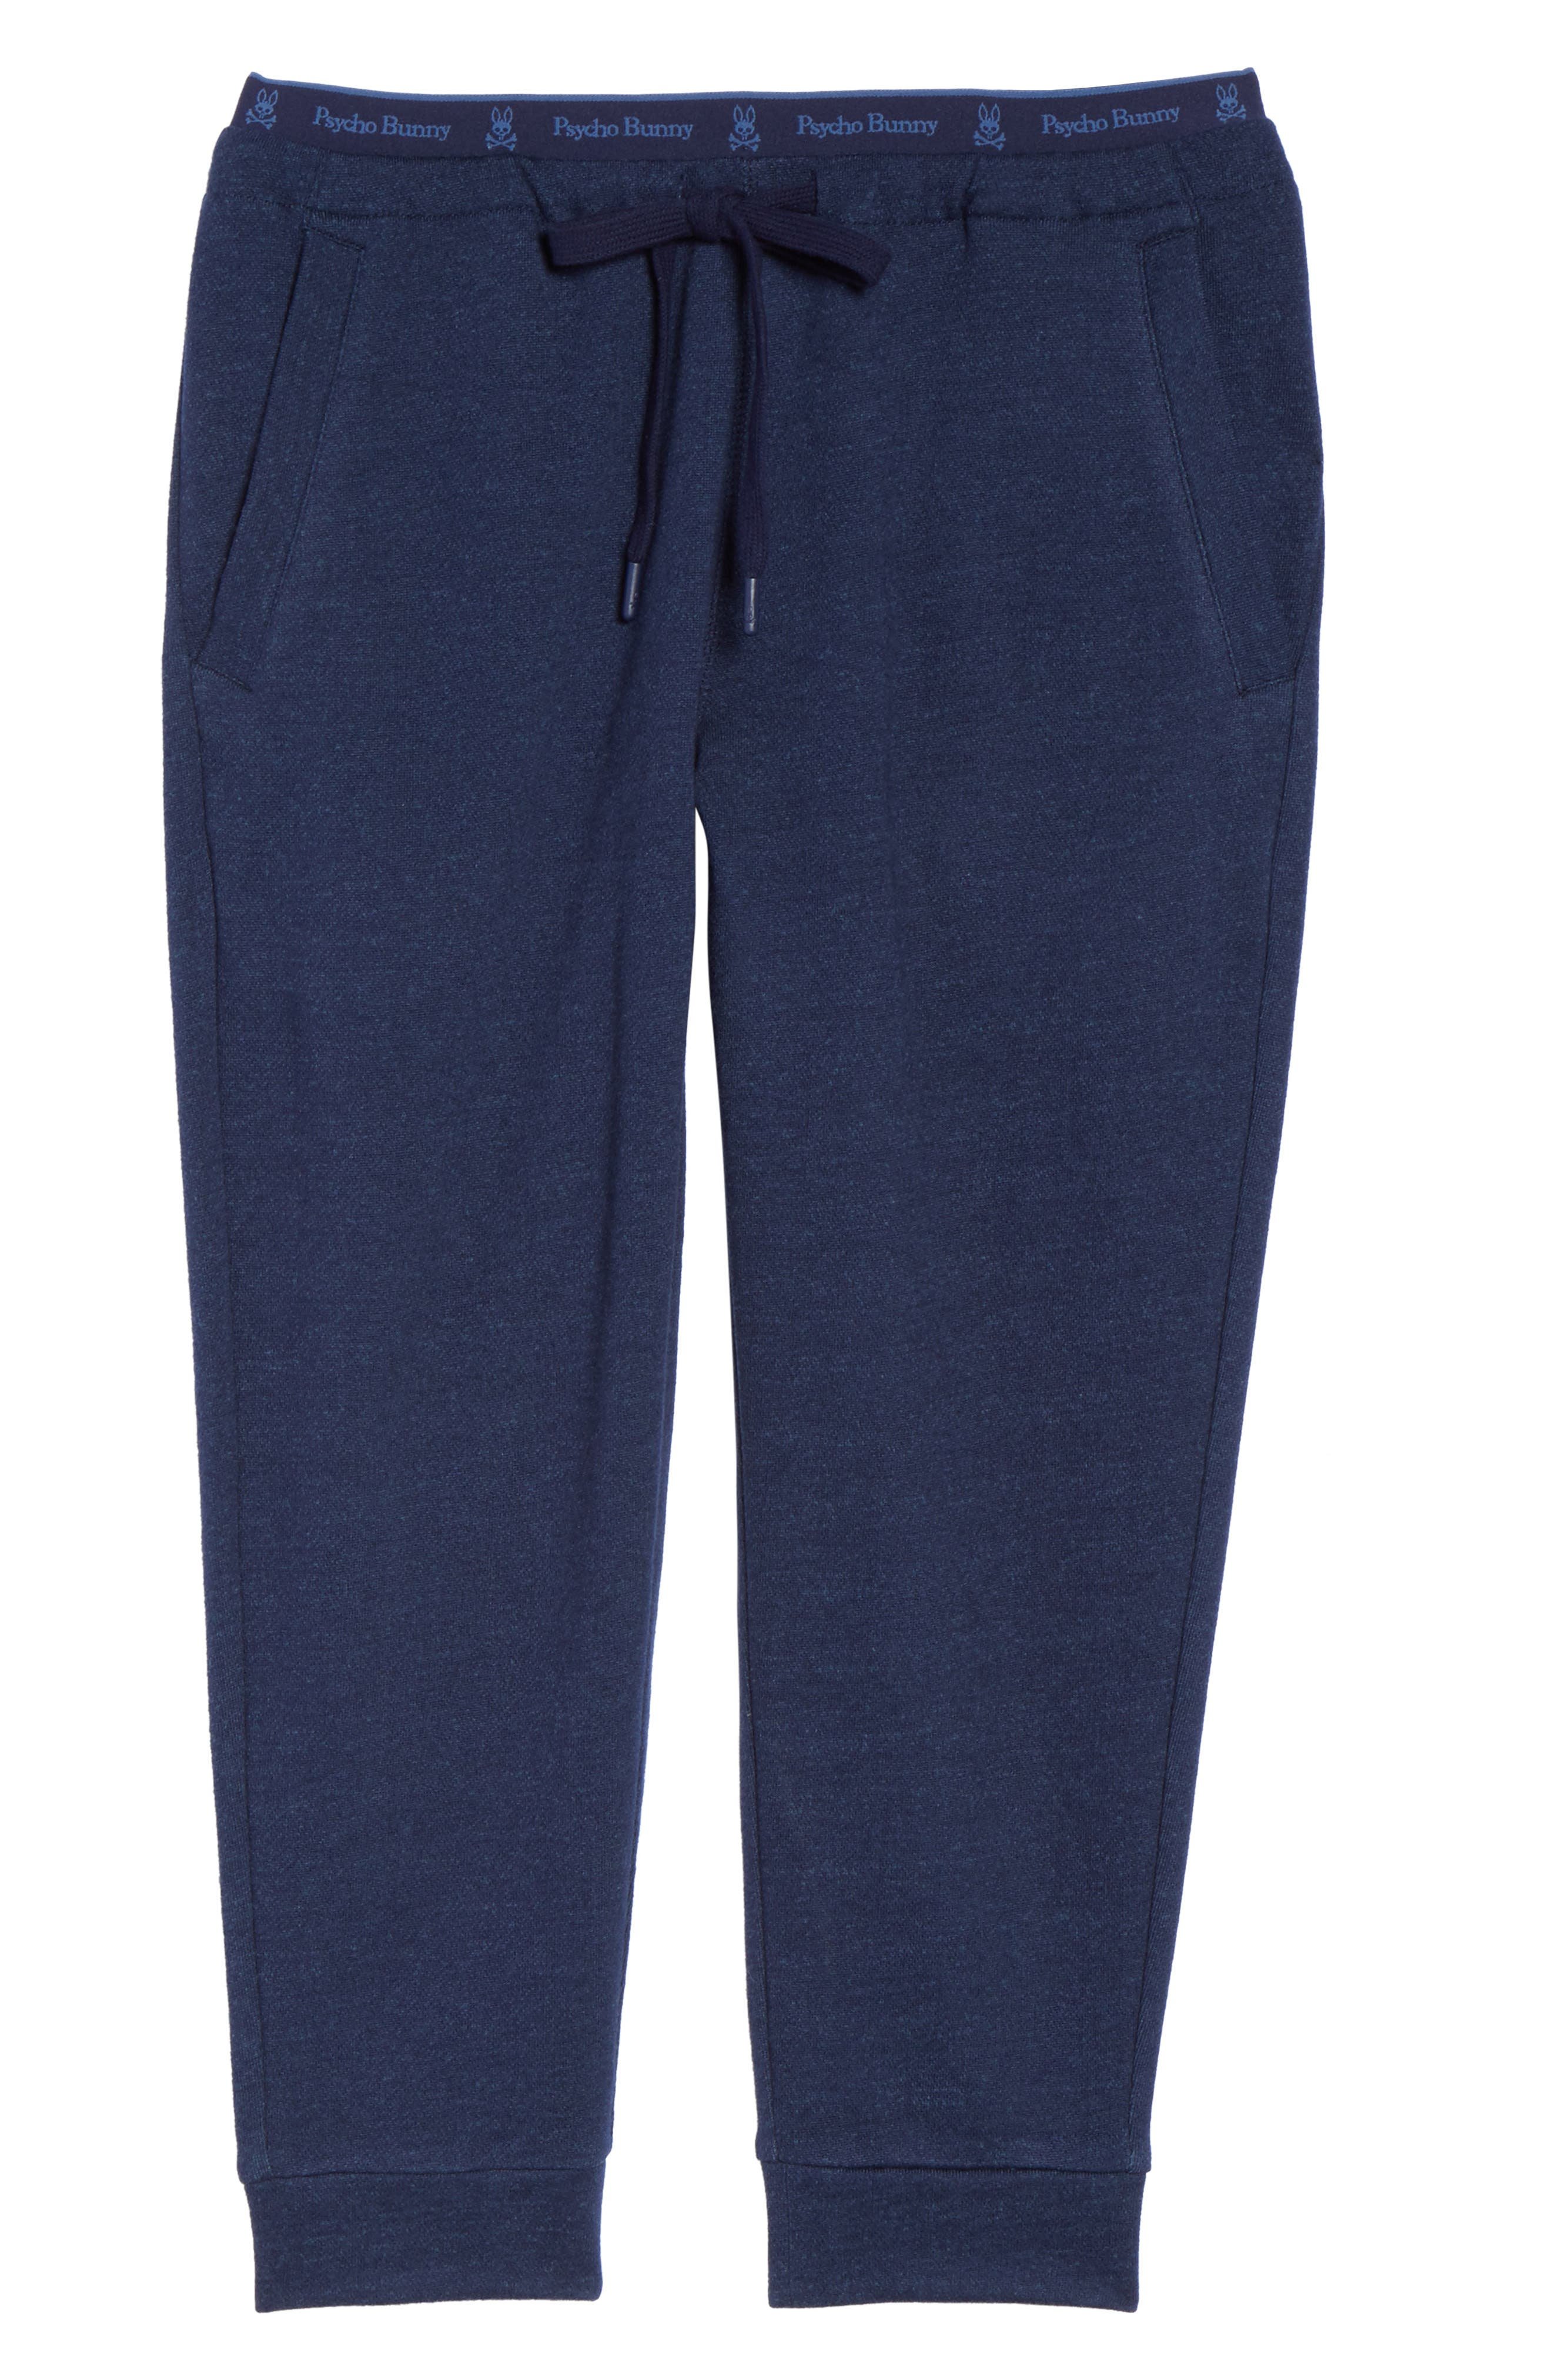 French Terry Pants,                             Alternate thumbnail 6, color,                             400